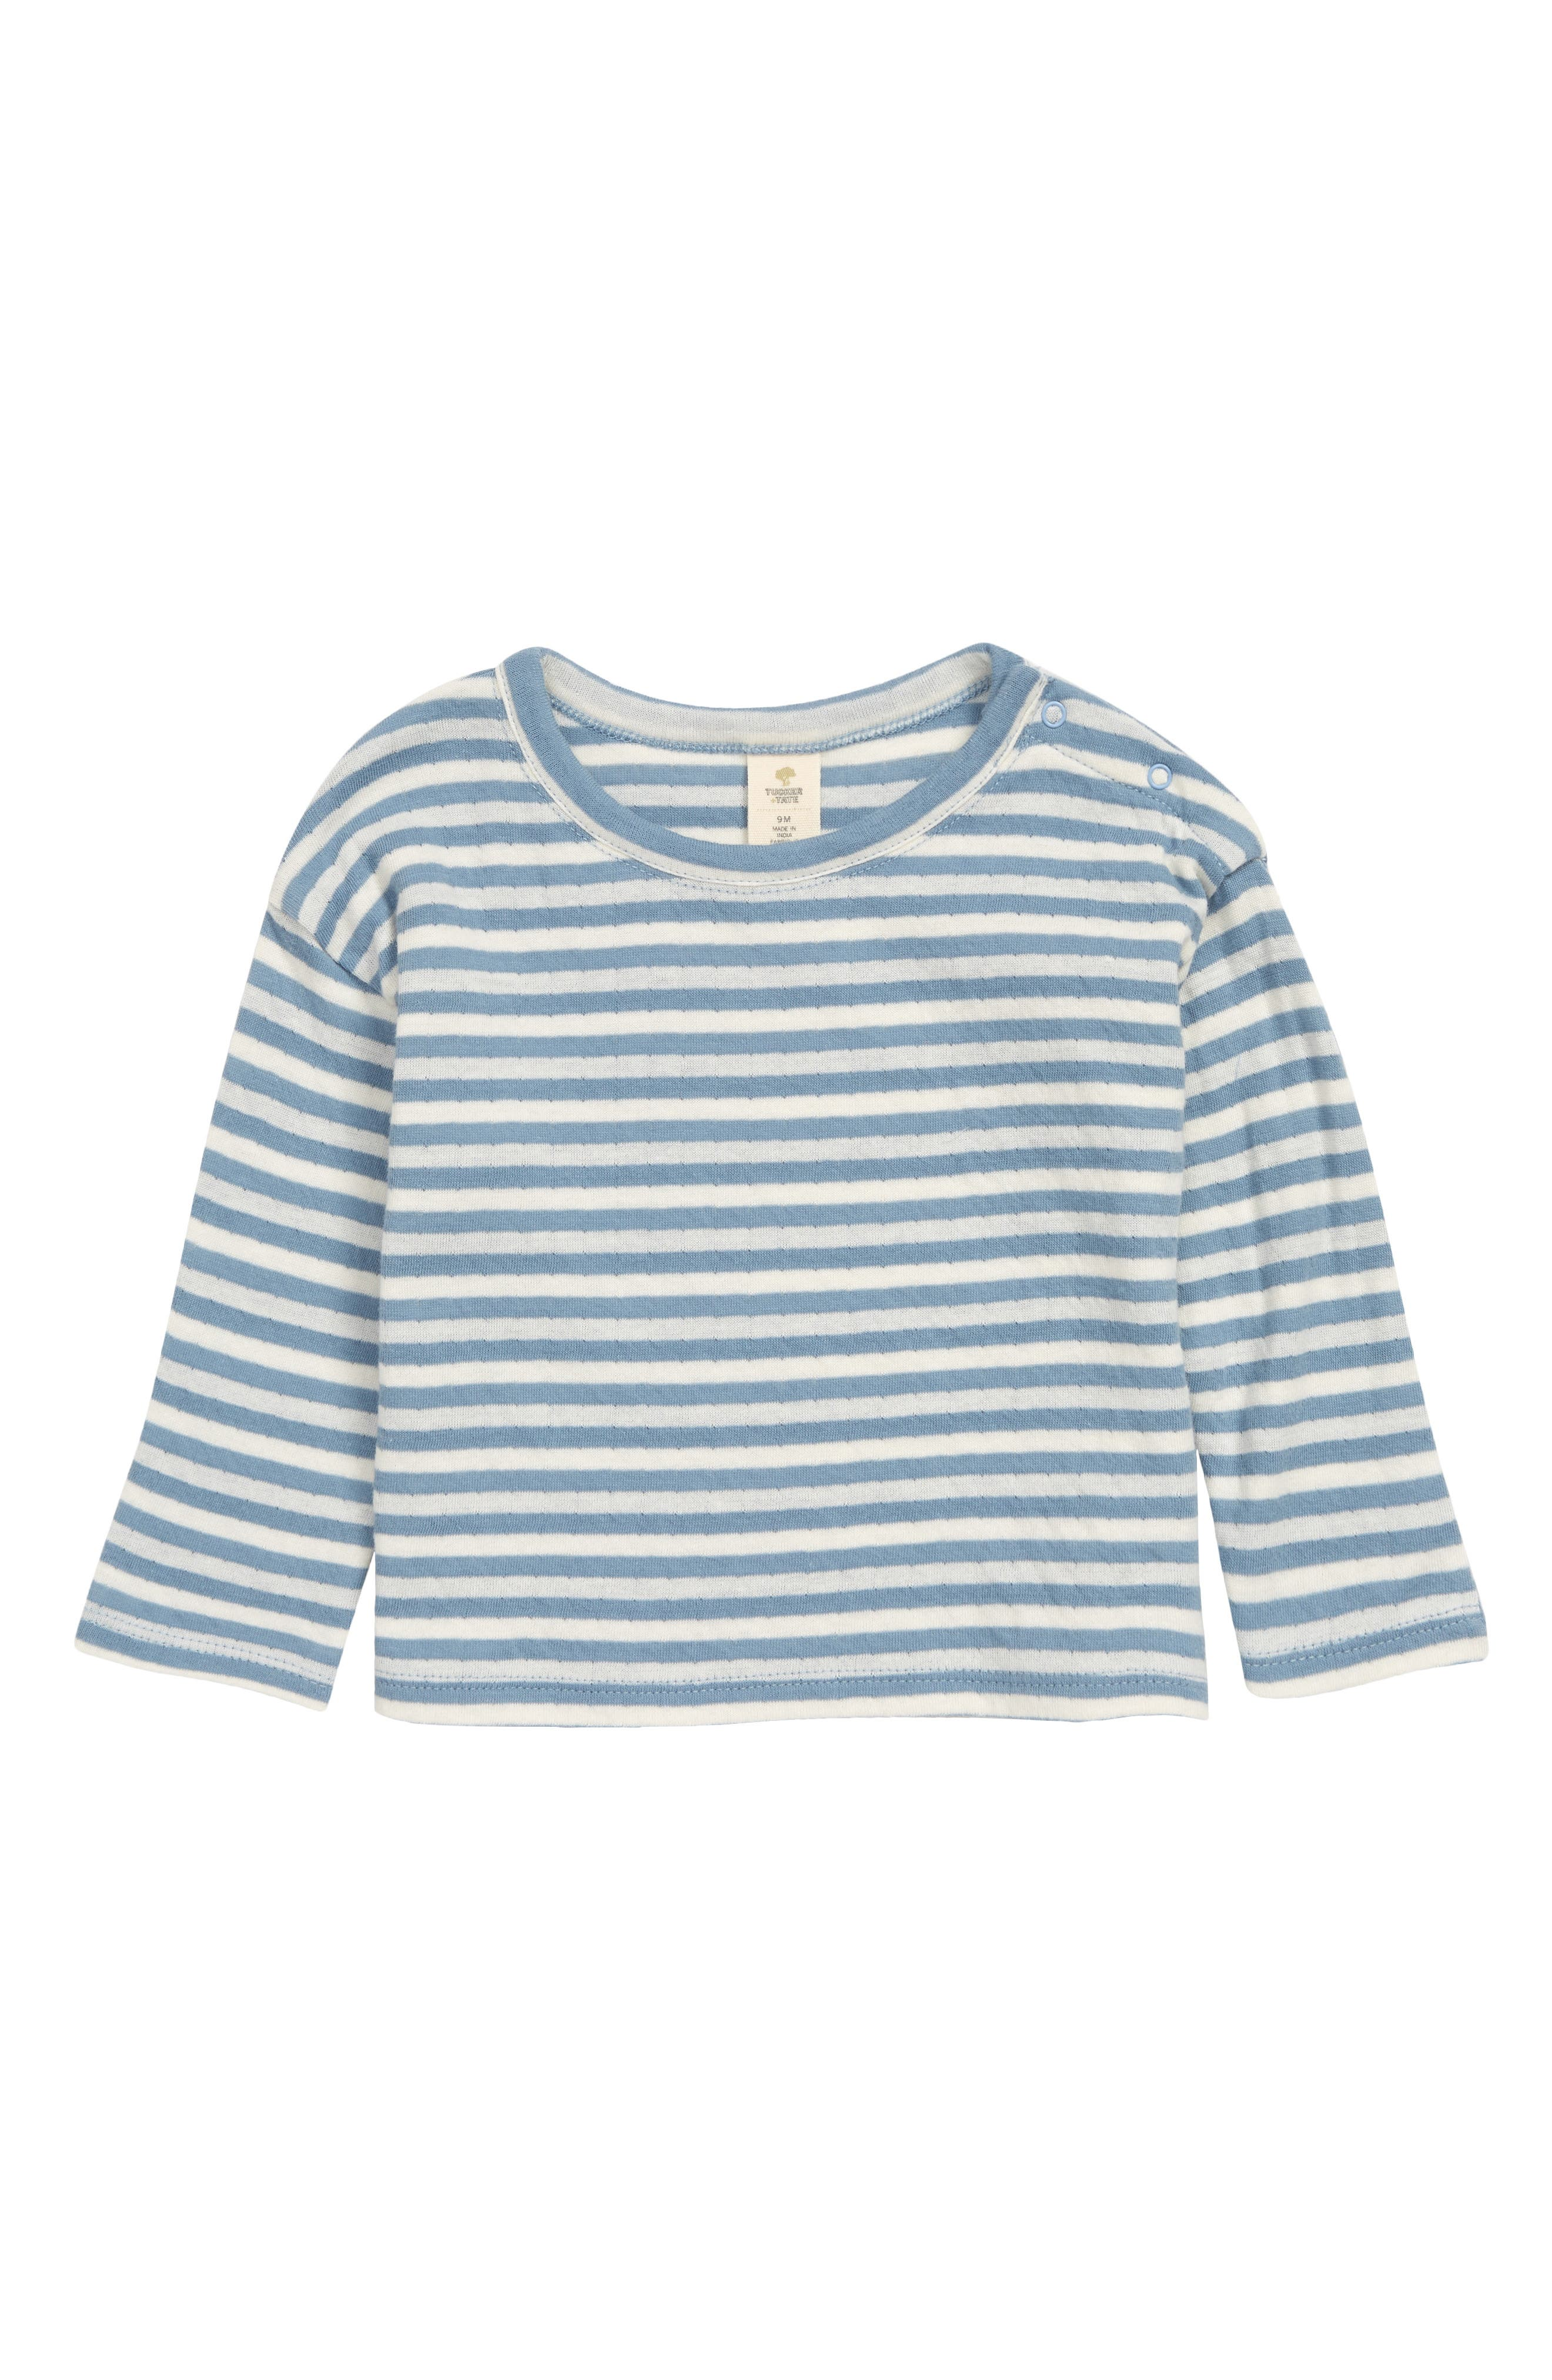 This striped cotton T-shirt features snaps at the shoulder so you can get your little one ready in, well, a snap! Style Name: Tucker + Tate Play Stripe Long Sleeve T-Shirt (Baby). Style Number: 6011229. Available in stores.